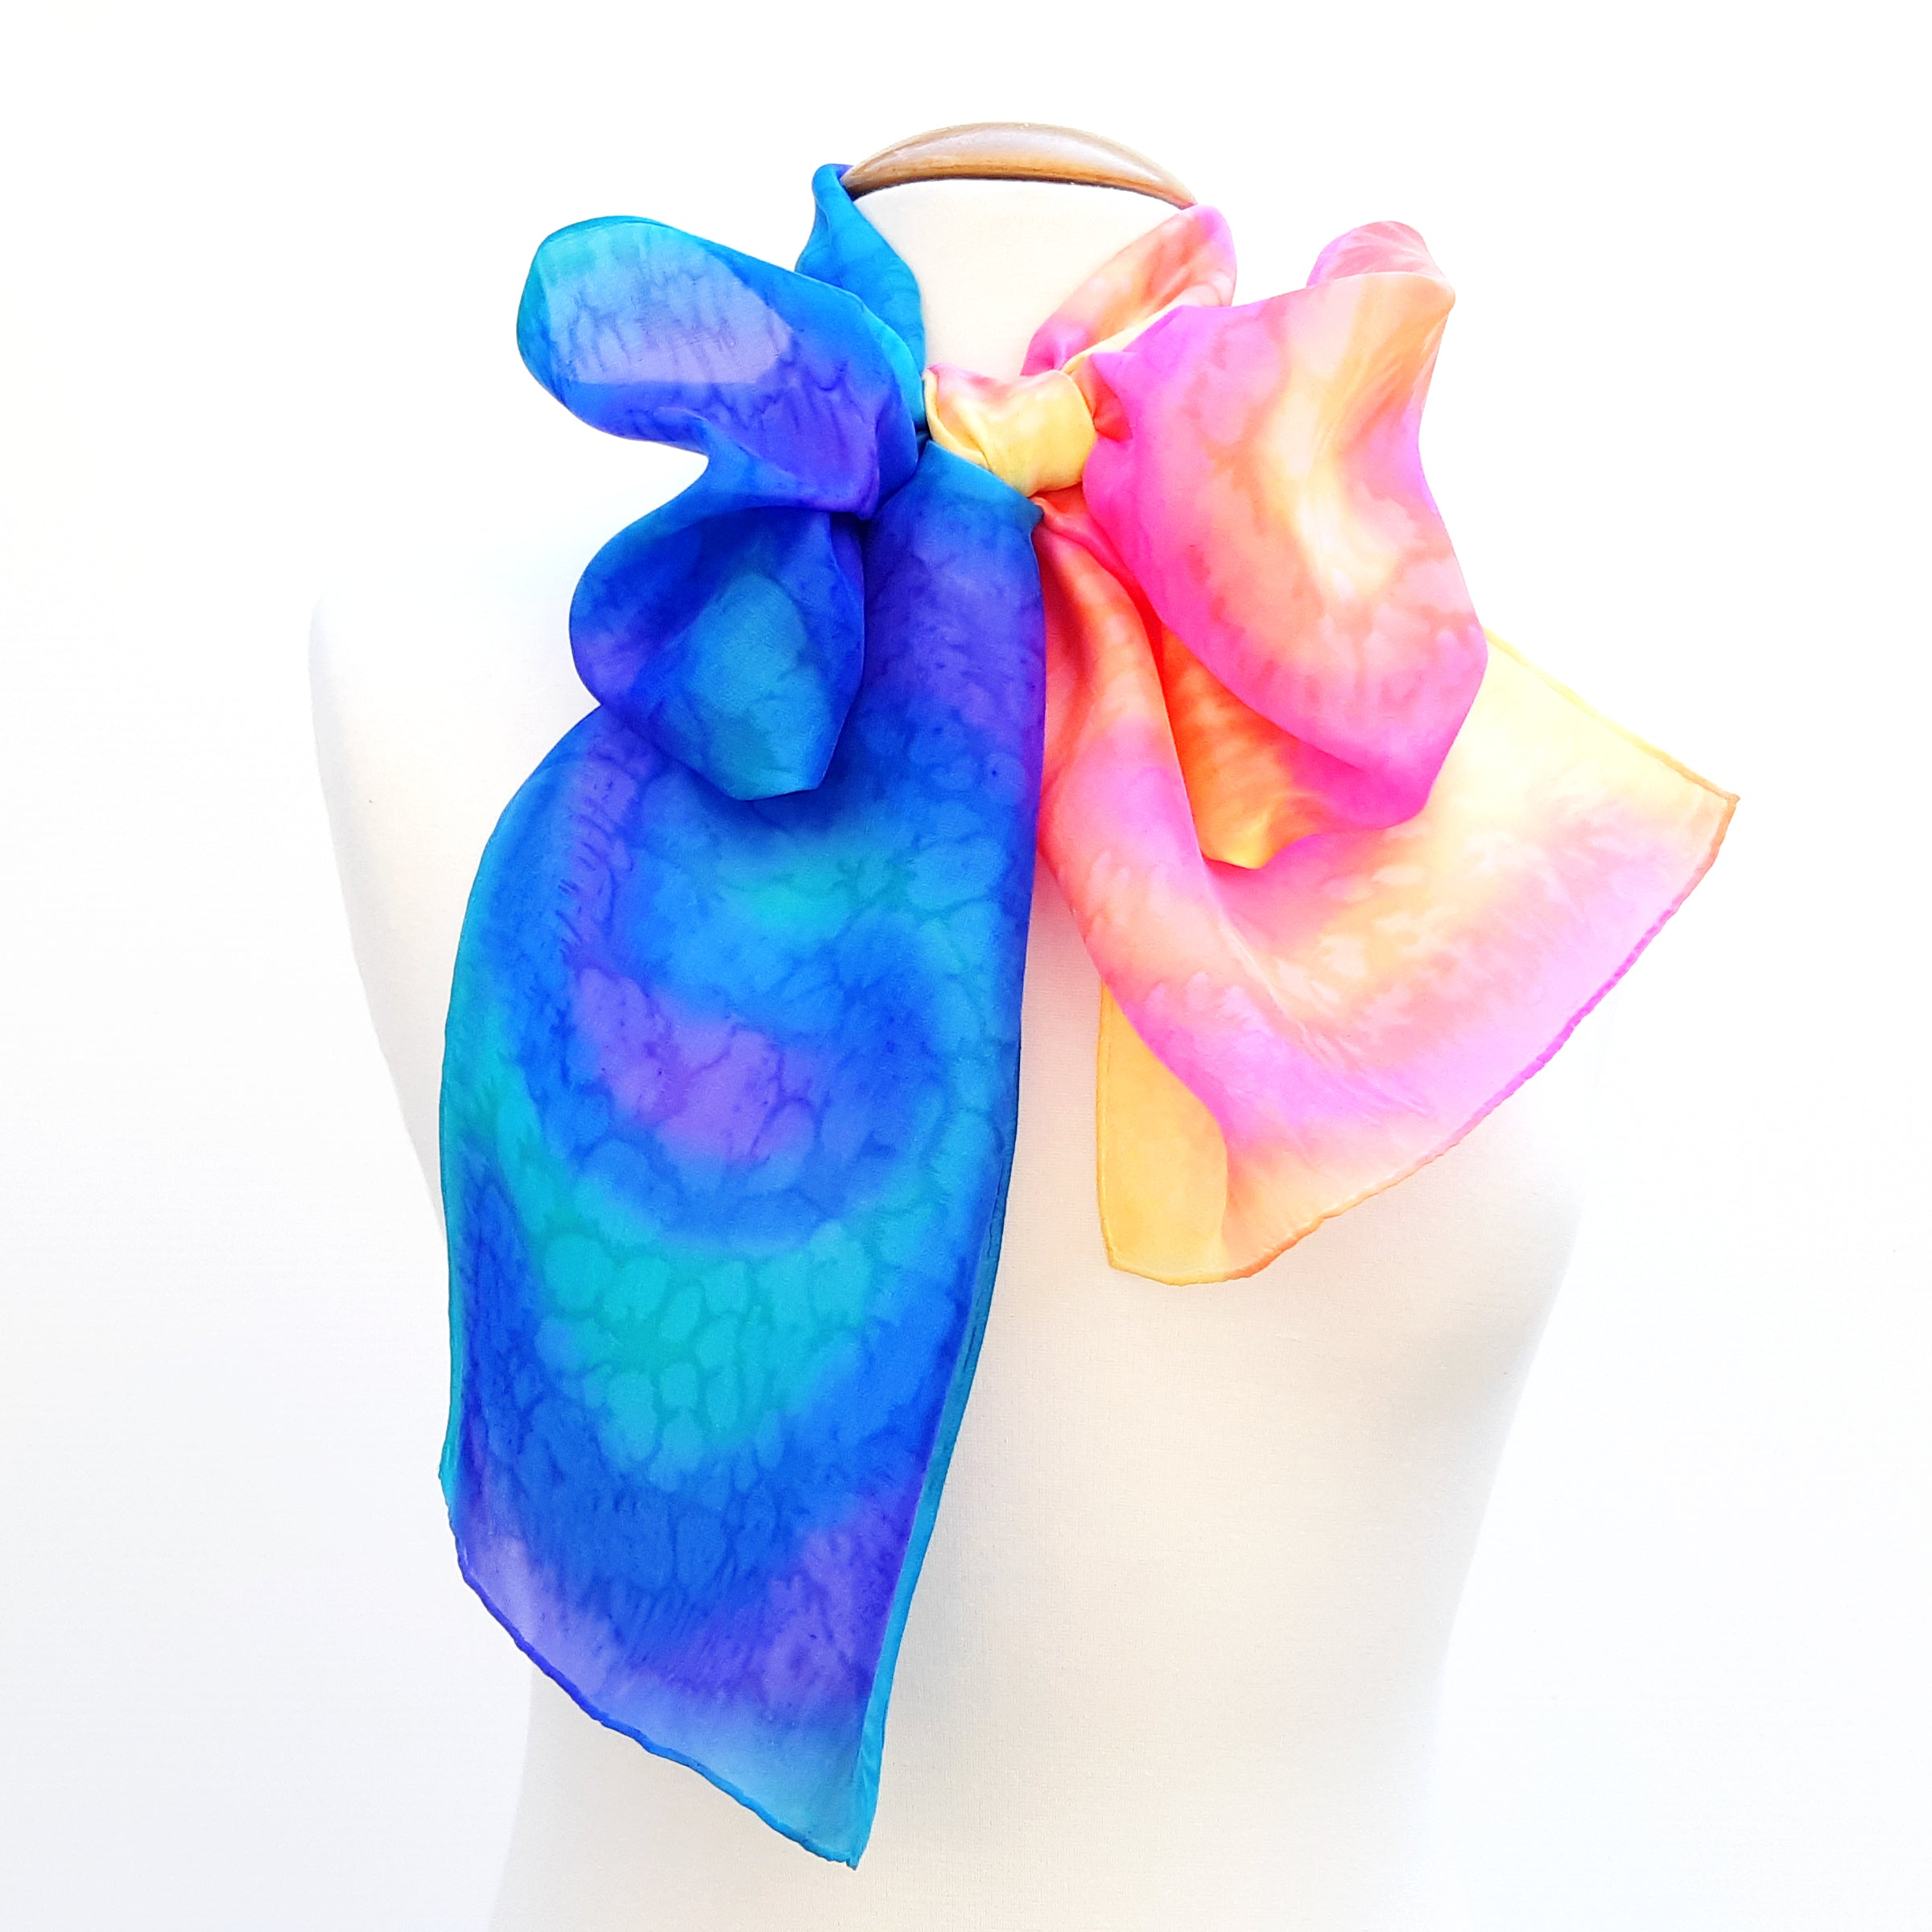 painted silk scarves LGTB rainbow colors